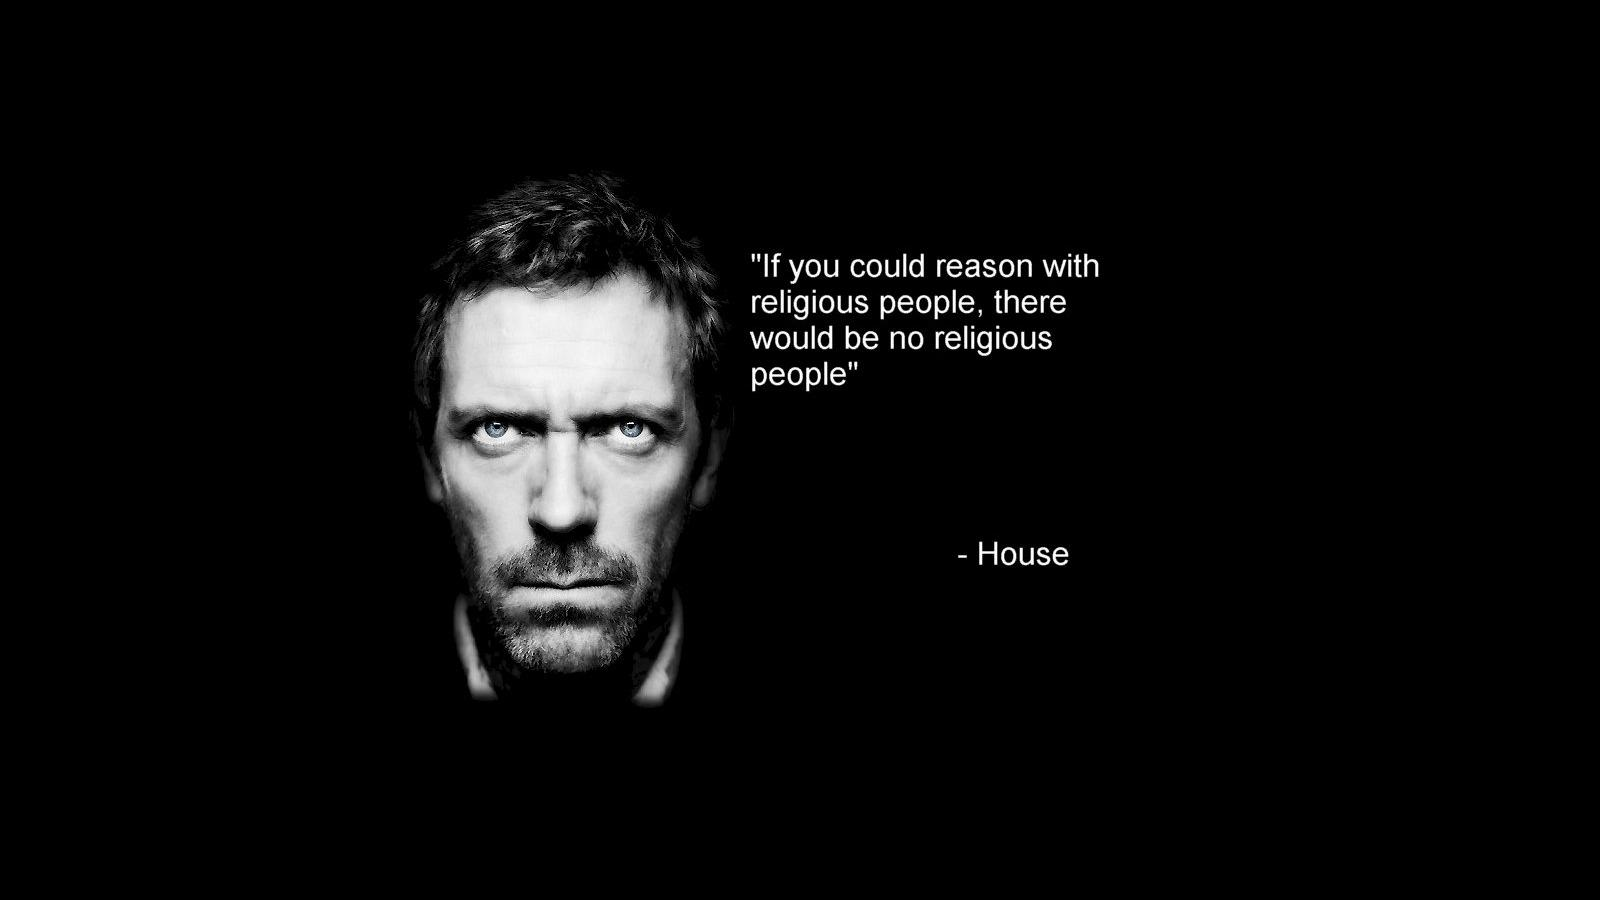 Religious Quotes By Famous People. QuotesGram